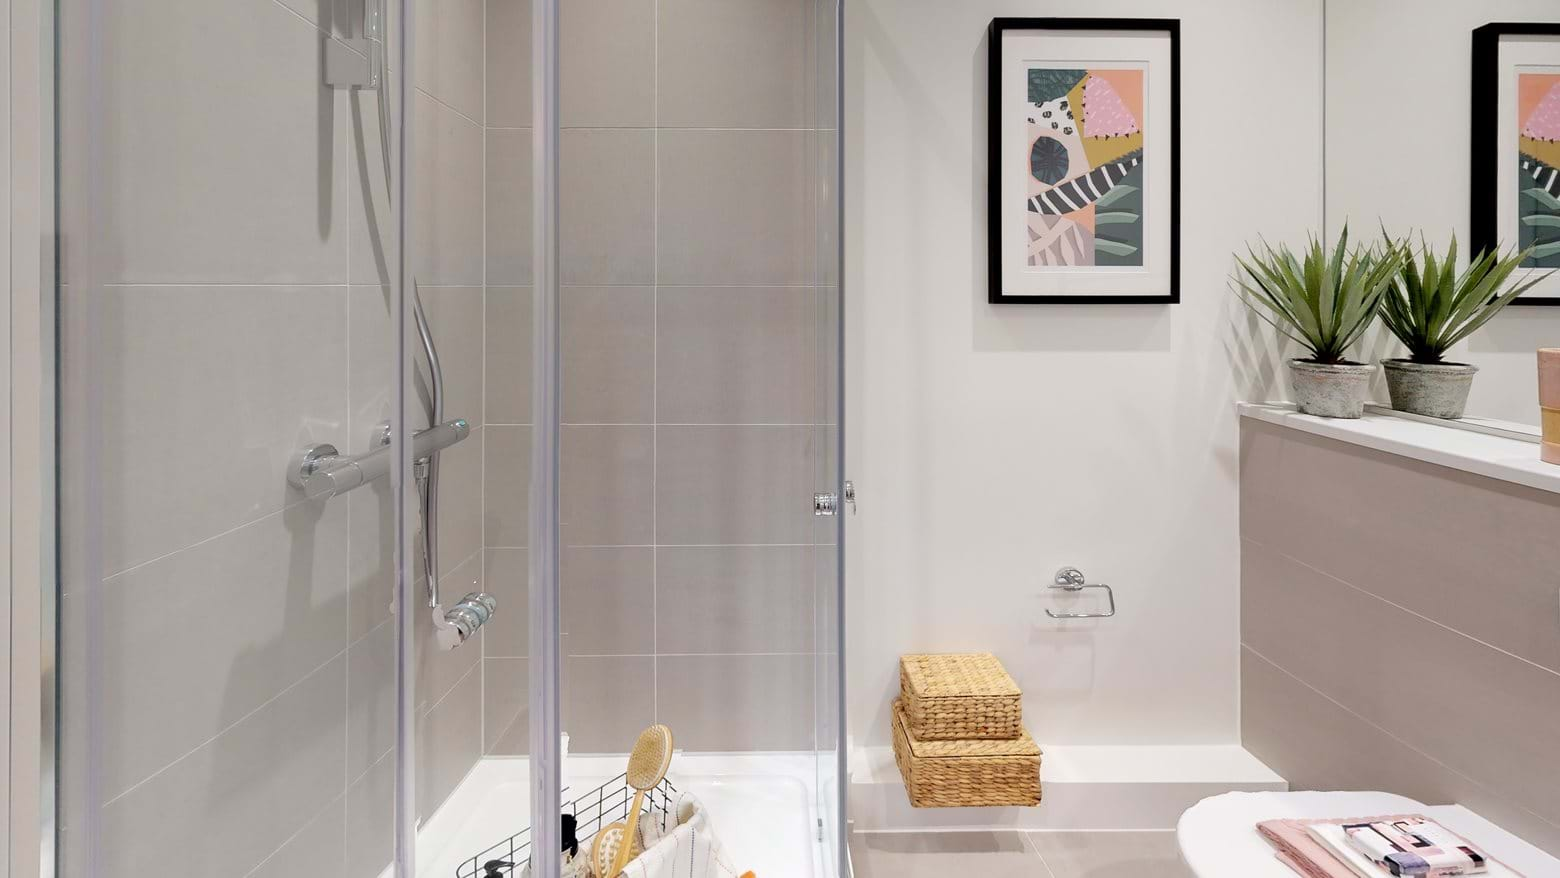 Patchworks - Shared Ownership Bathroom